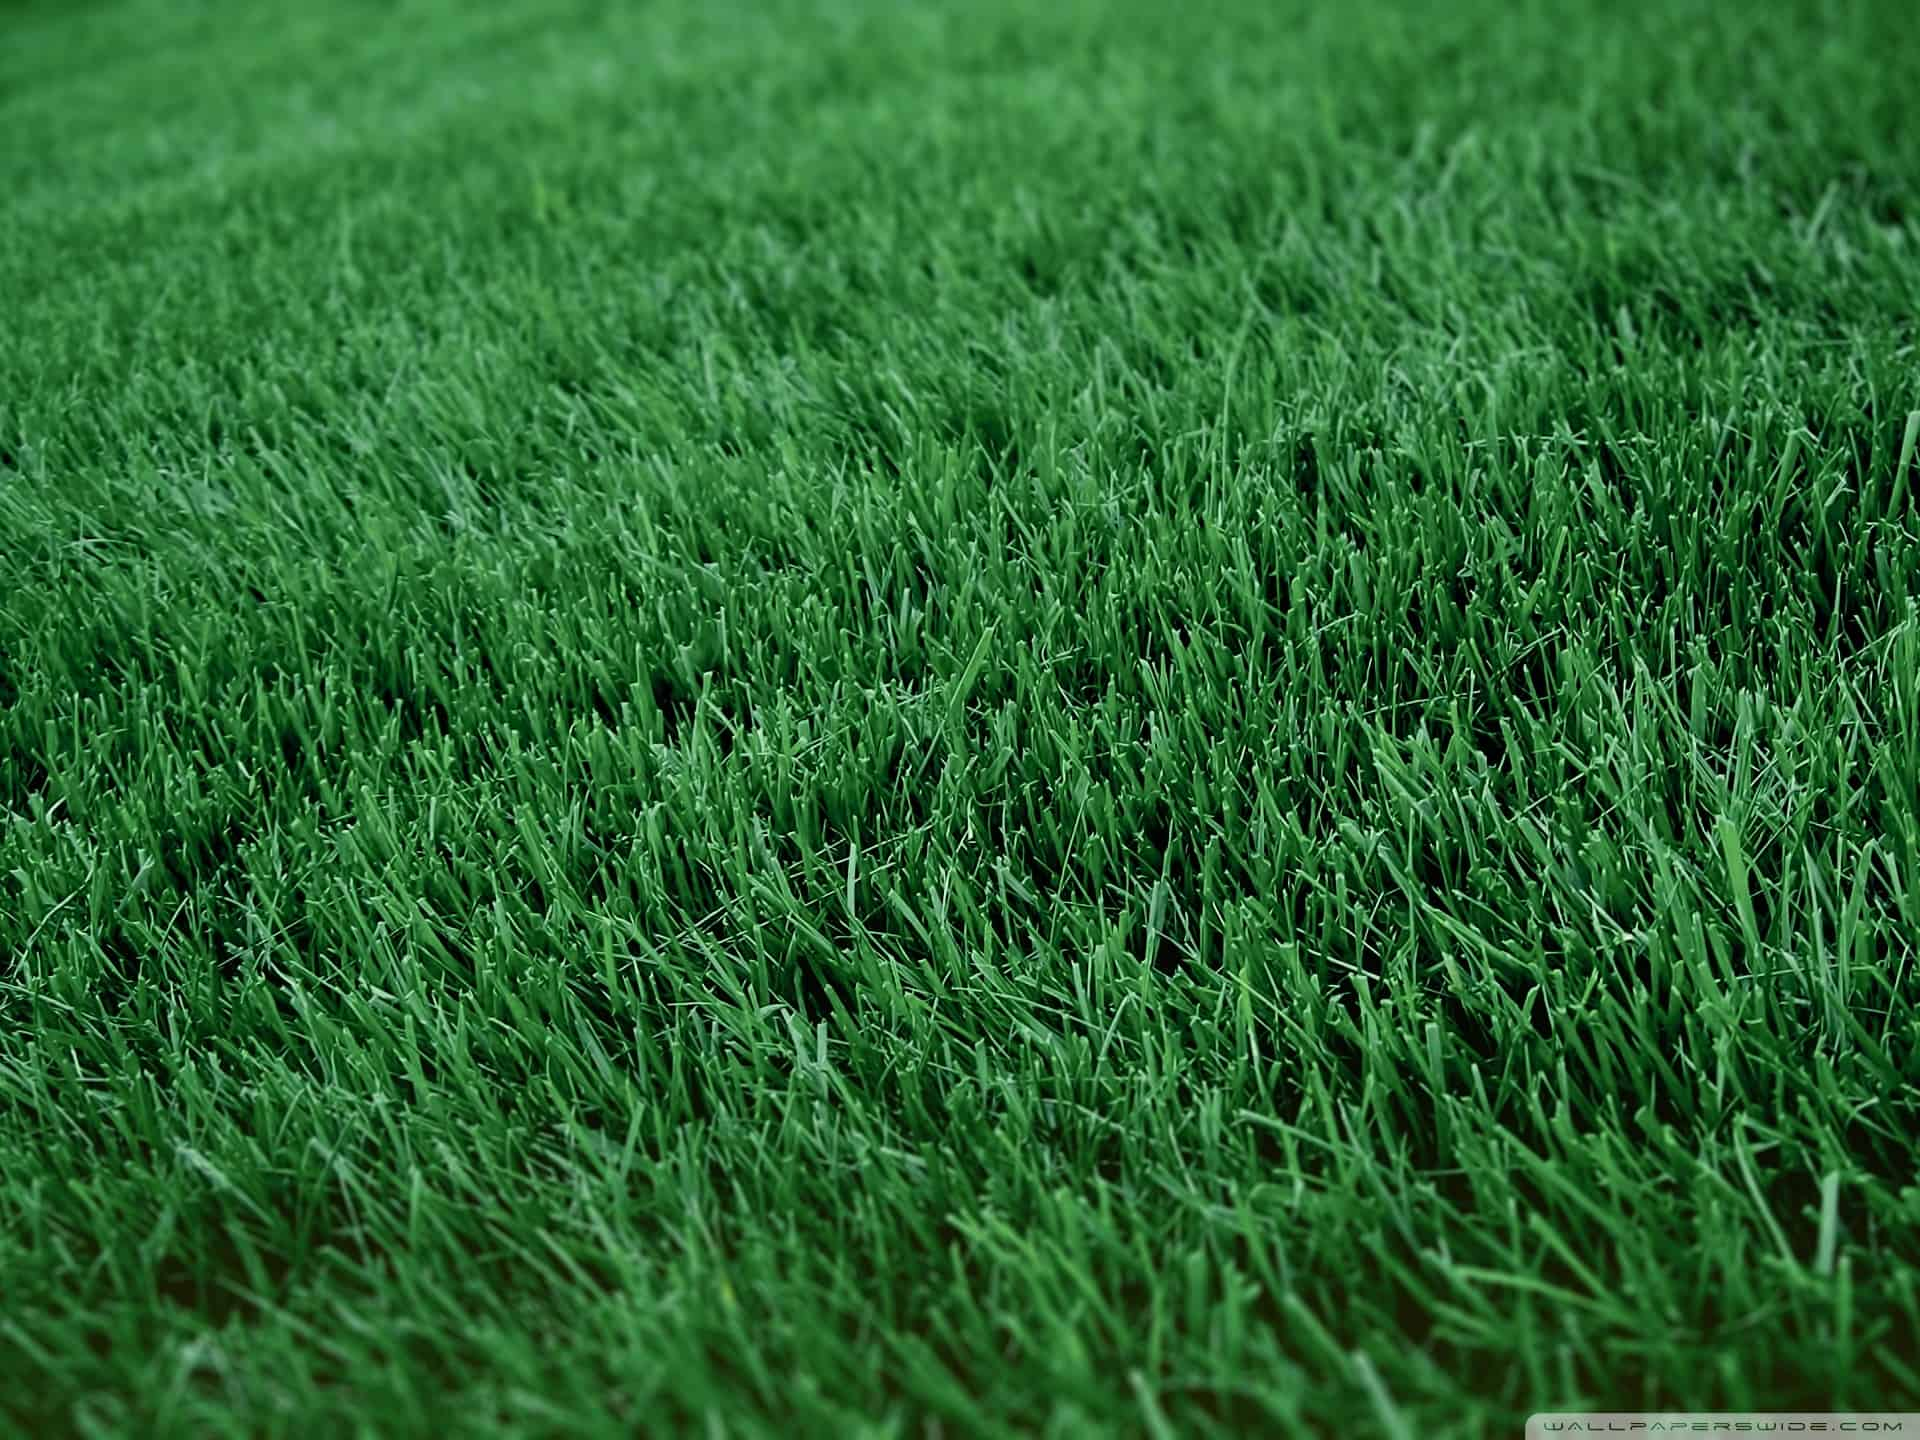 close-up of a green, healthy, lush lawn